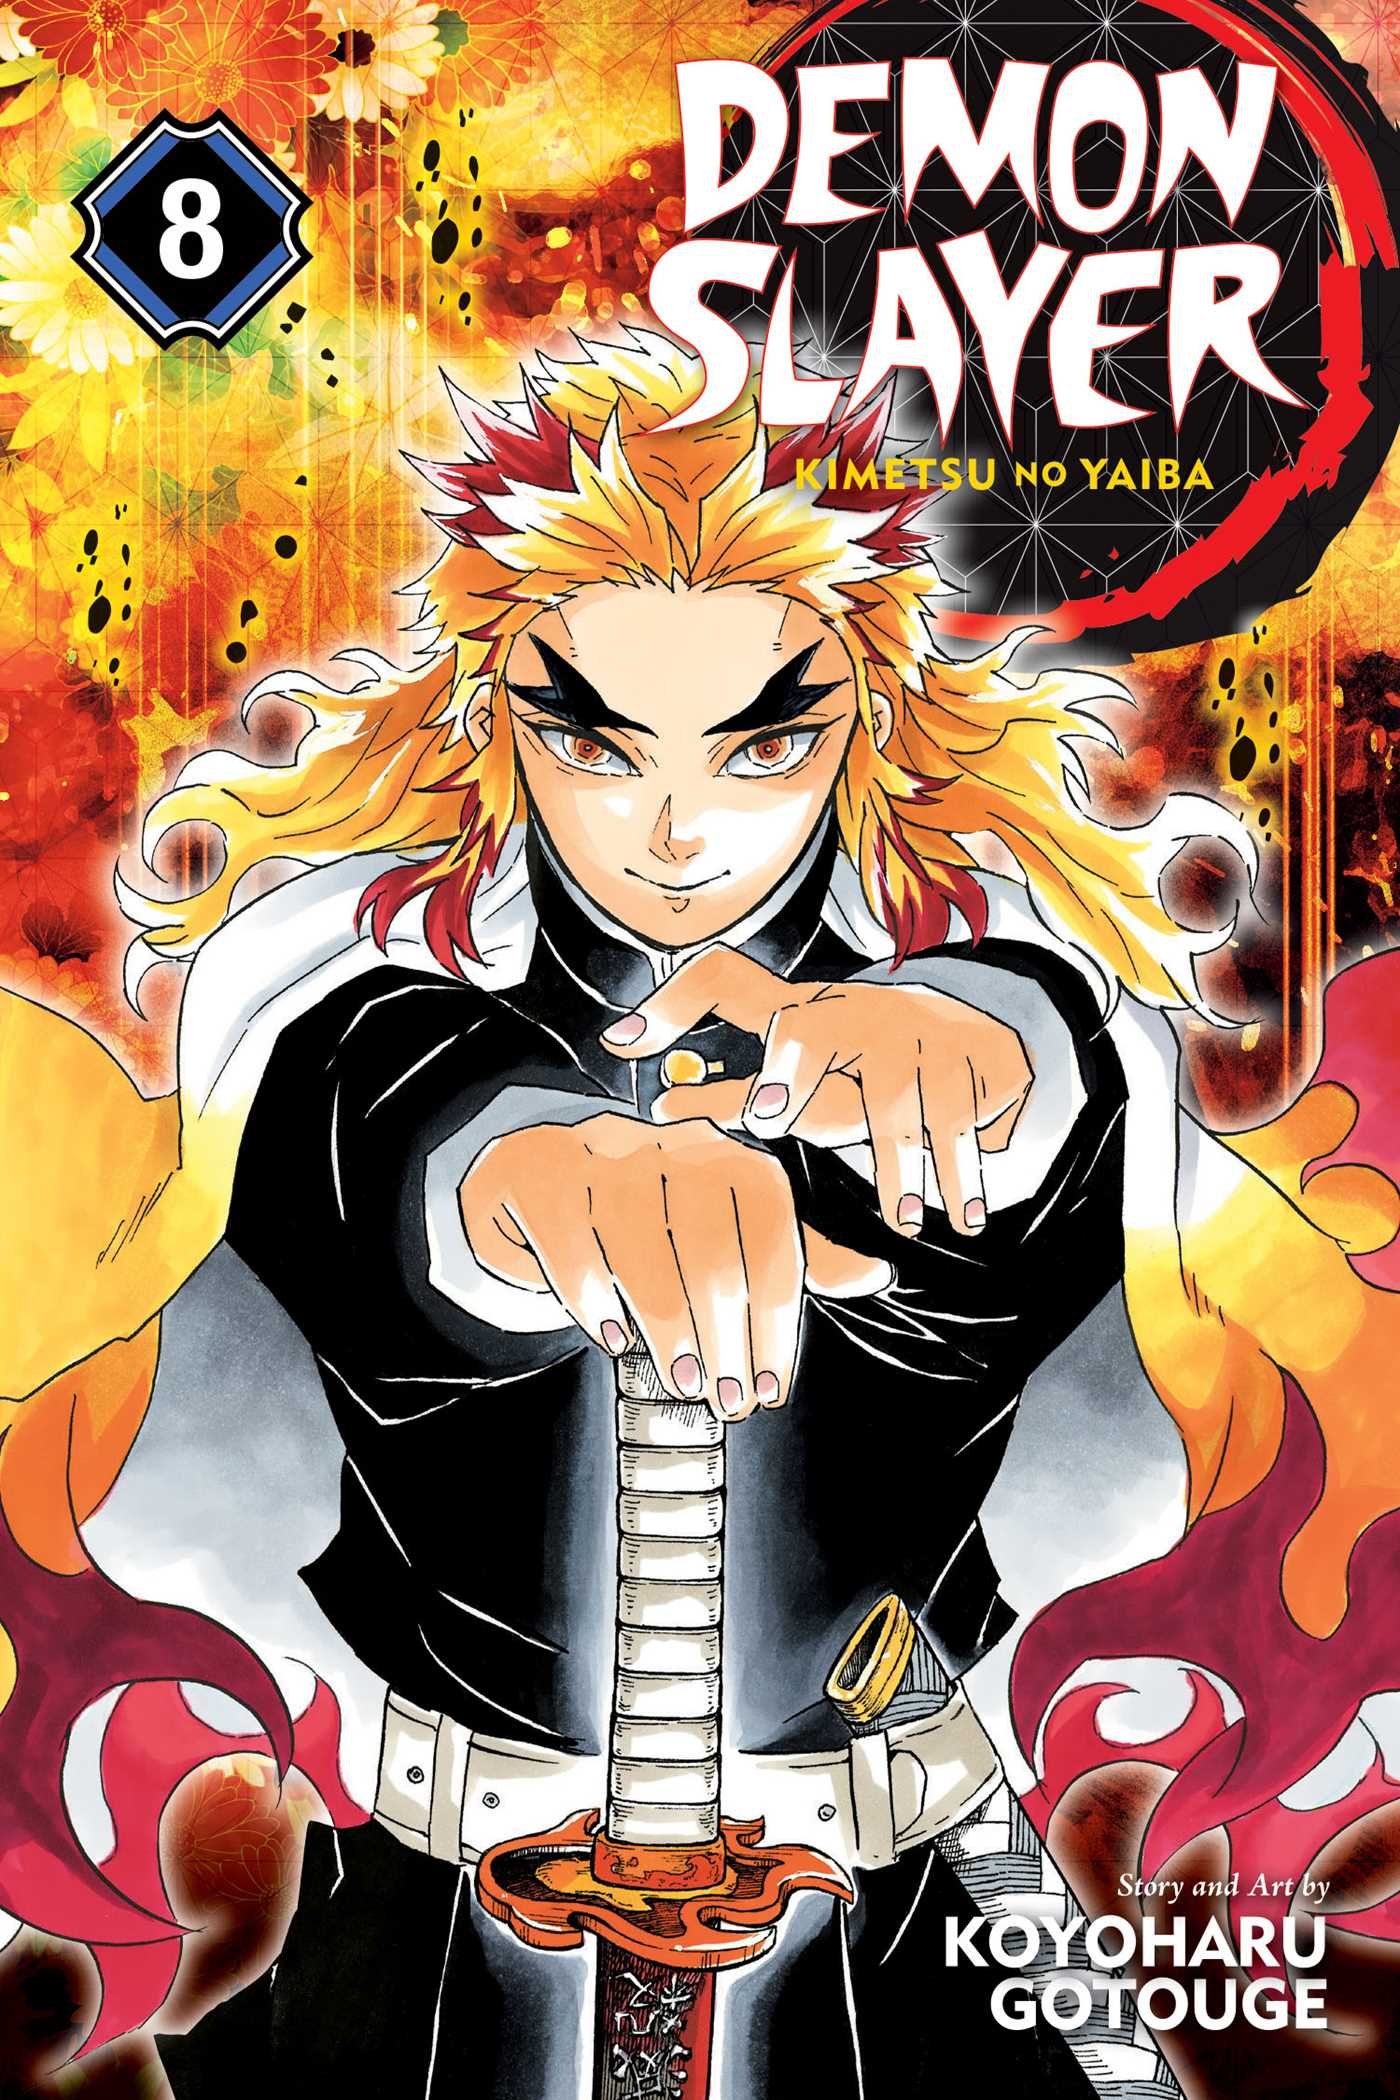 Demon Slayer Kimetsu No Yaiba Vol 8 Book By Koyoharu